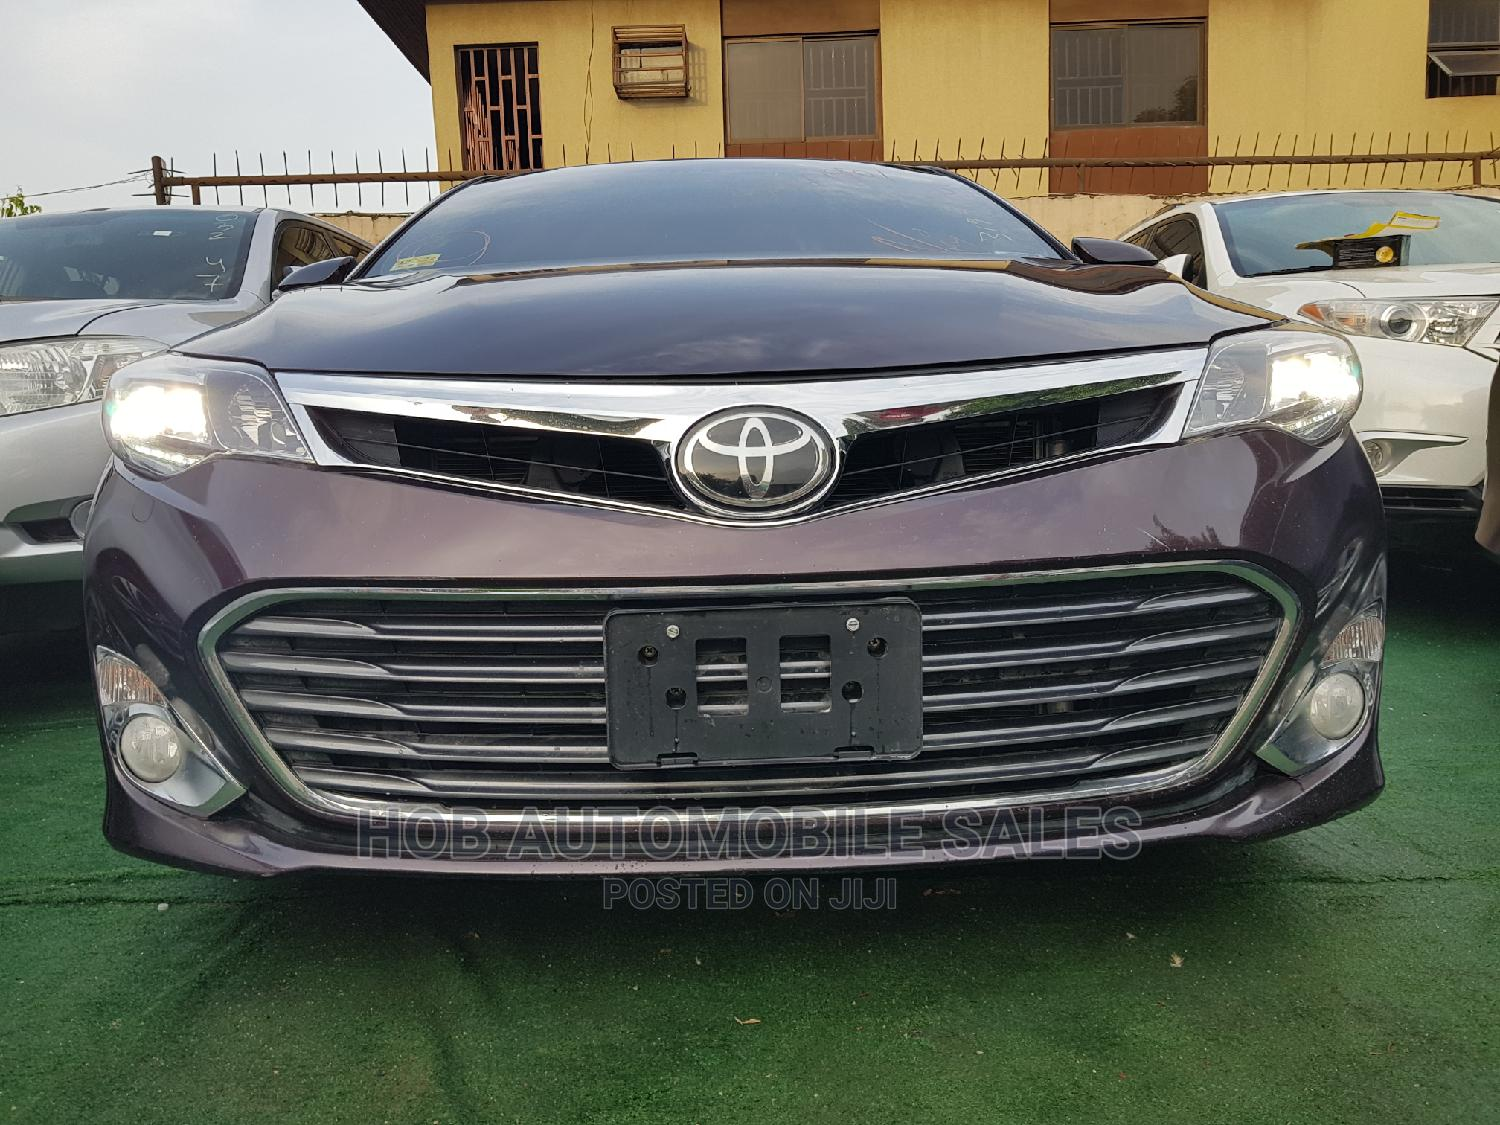 Archive: Toyota Avalon 2013 Brown